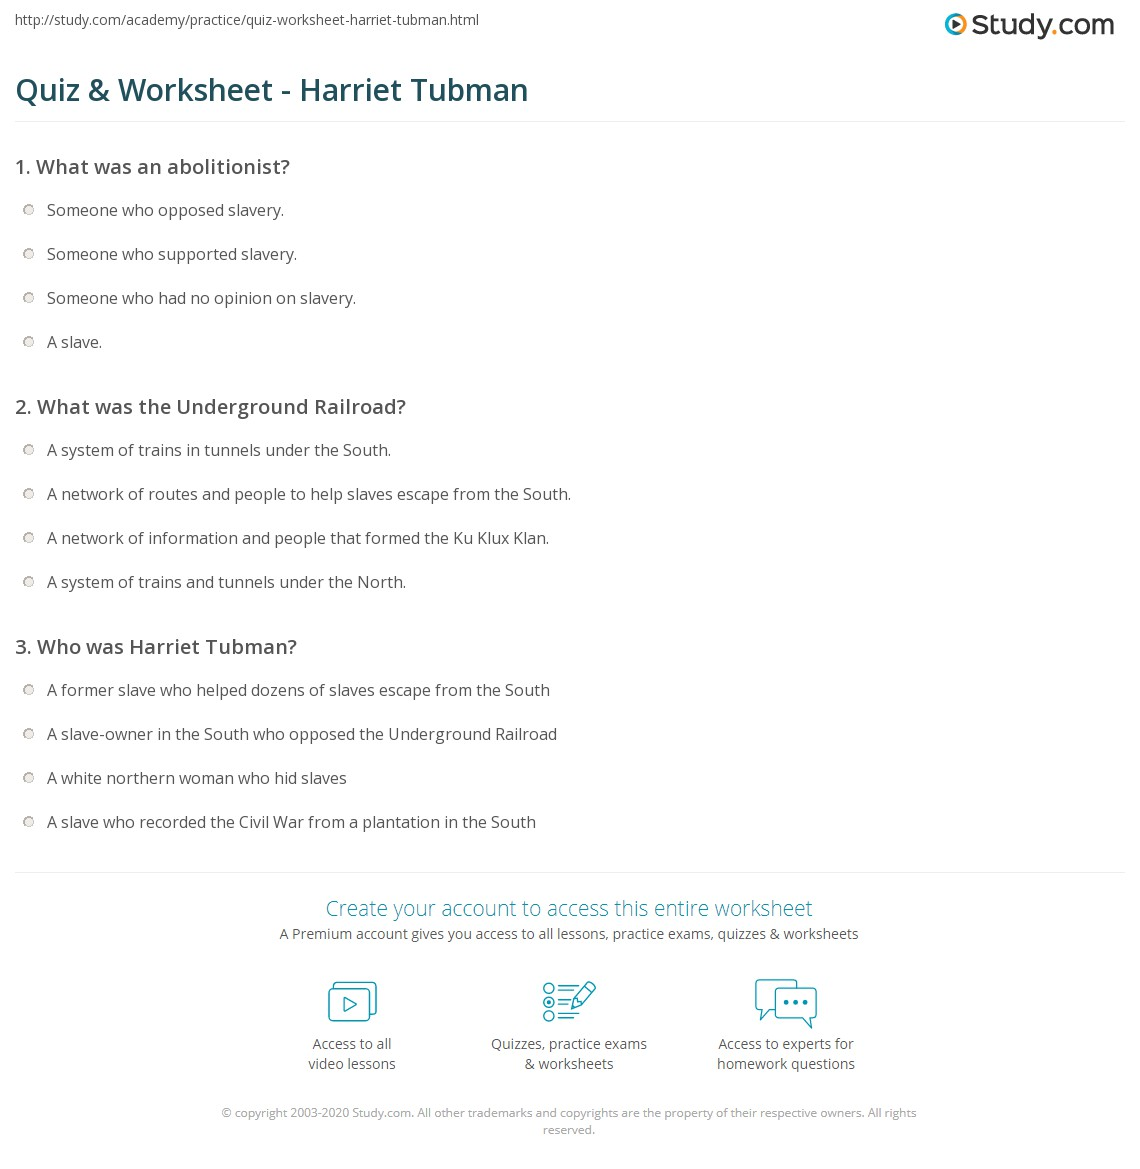 About Harriet Tubman Worksheet